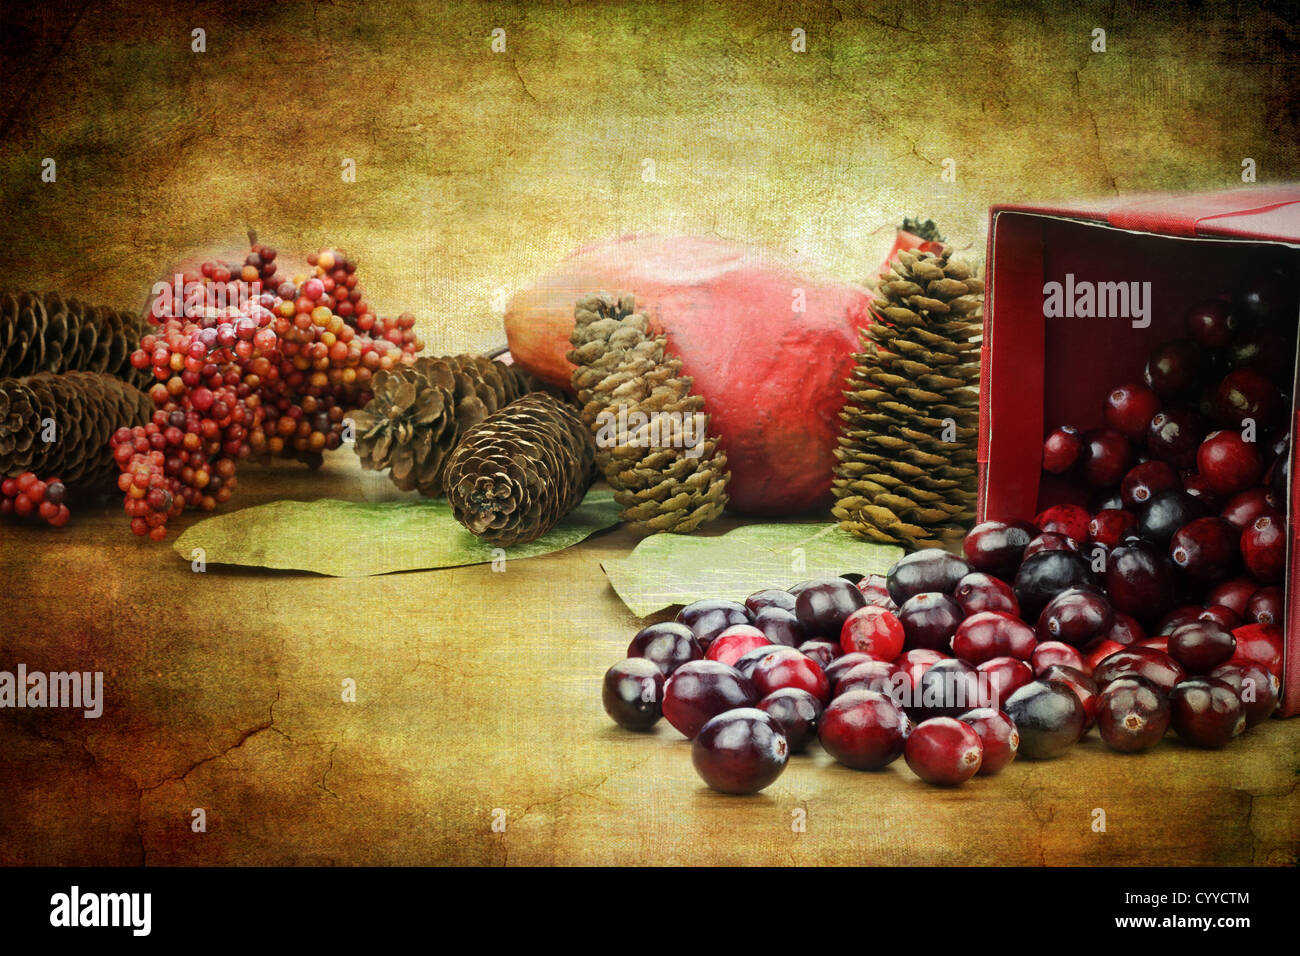 Photo based illustration of a red Christmas box spilling out fresh cranberries with pine cones an pomegranates in - Stock Image